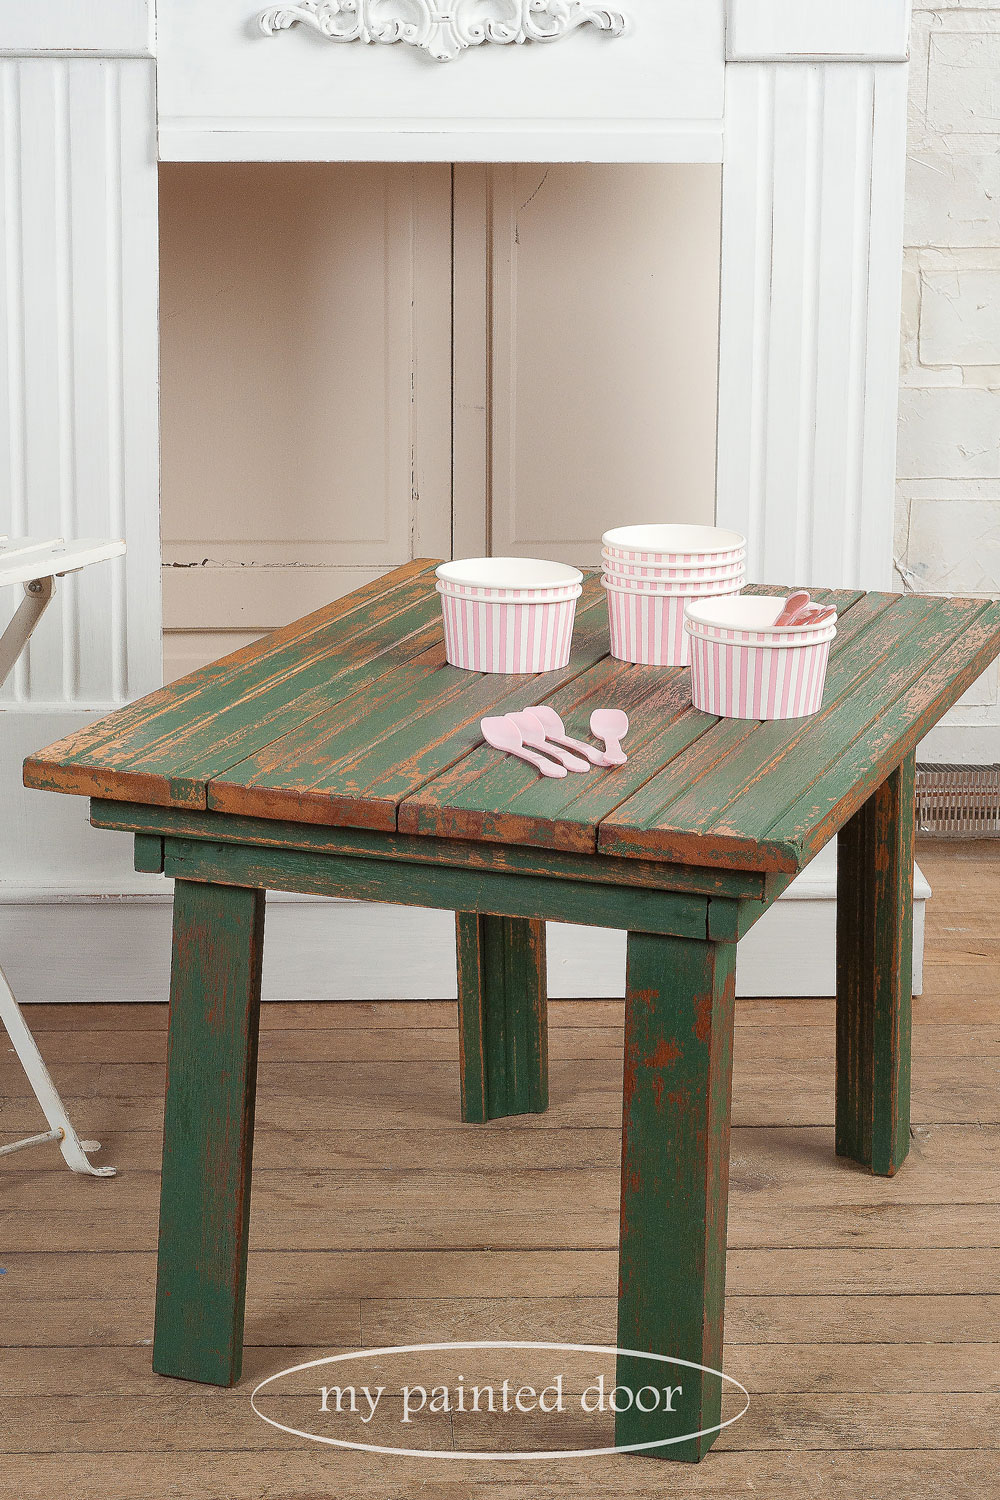 table painted with Homestead House milk paint in waterloo green - via My Painted Door (.com)